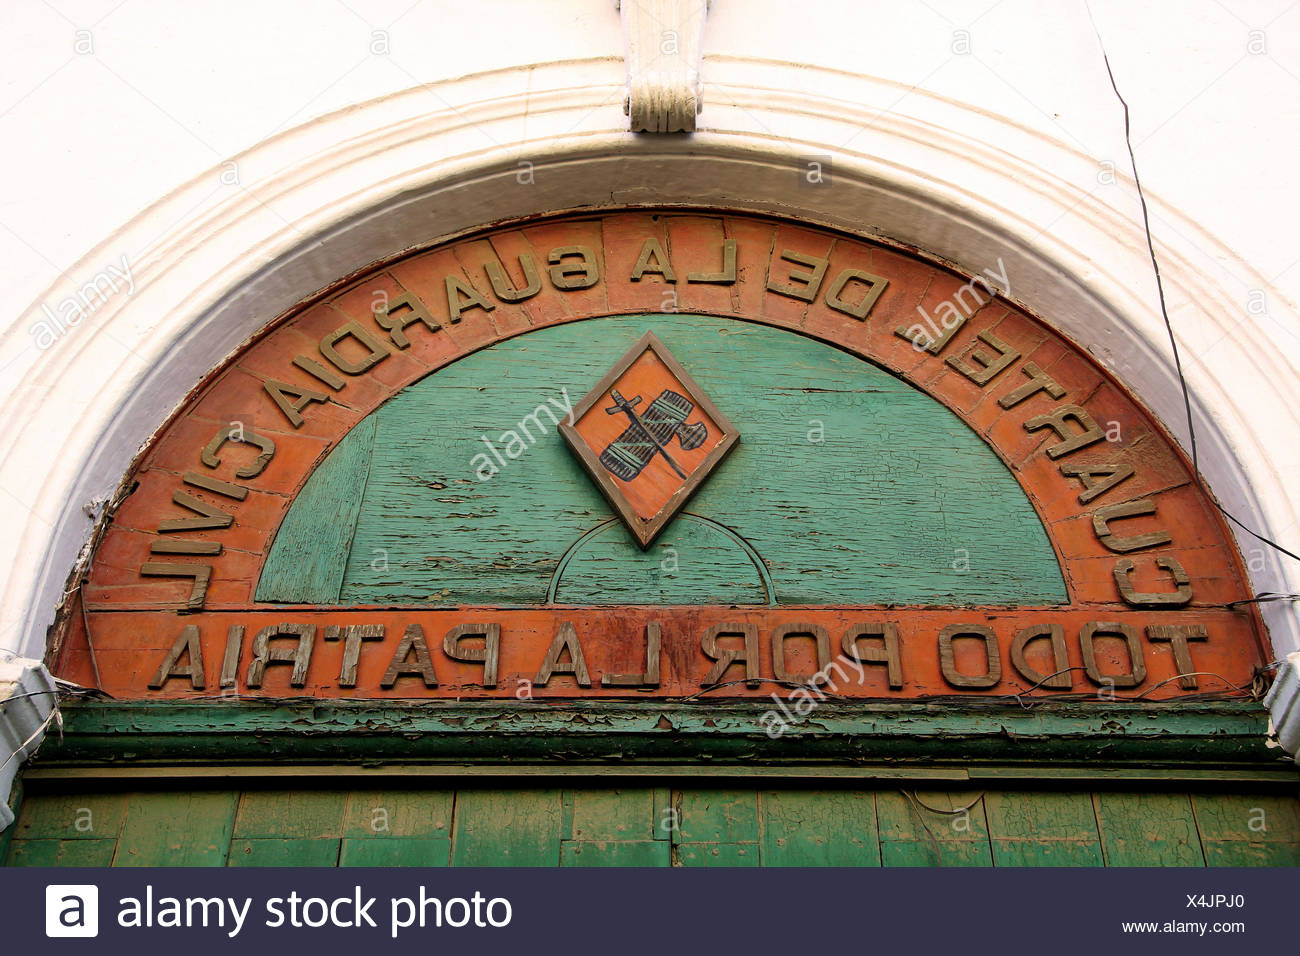 verdict andalusia fatherland vow green wood europe spain facade relief verdict - Stock Image